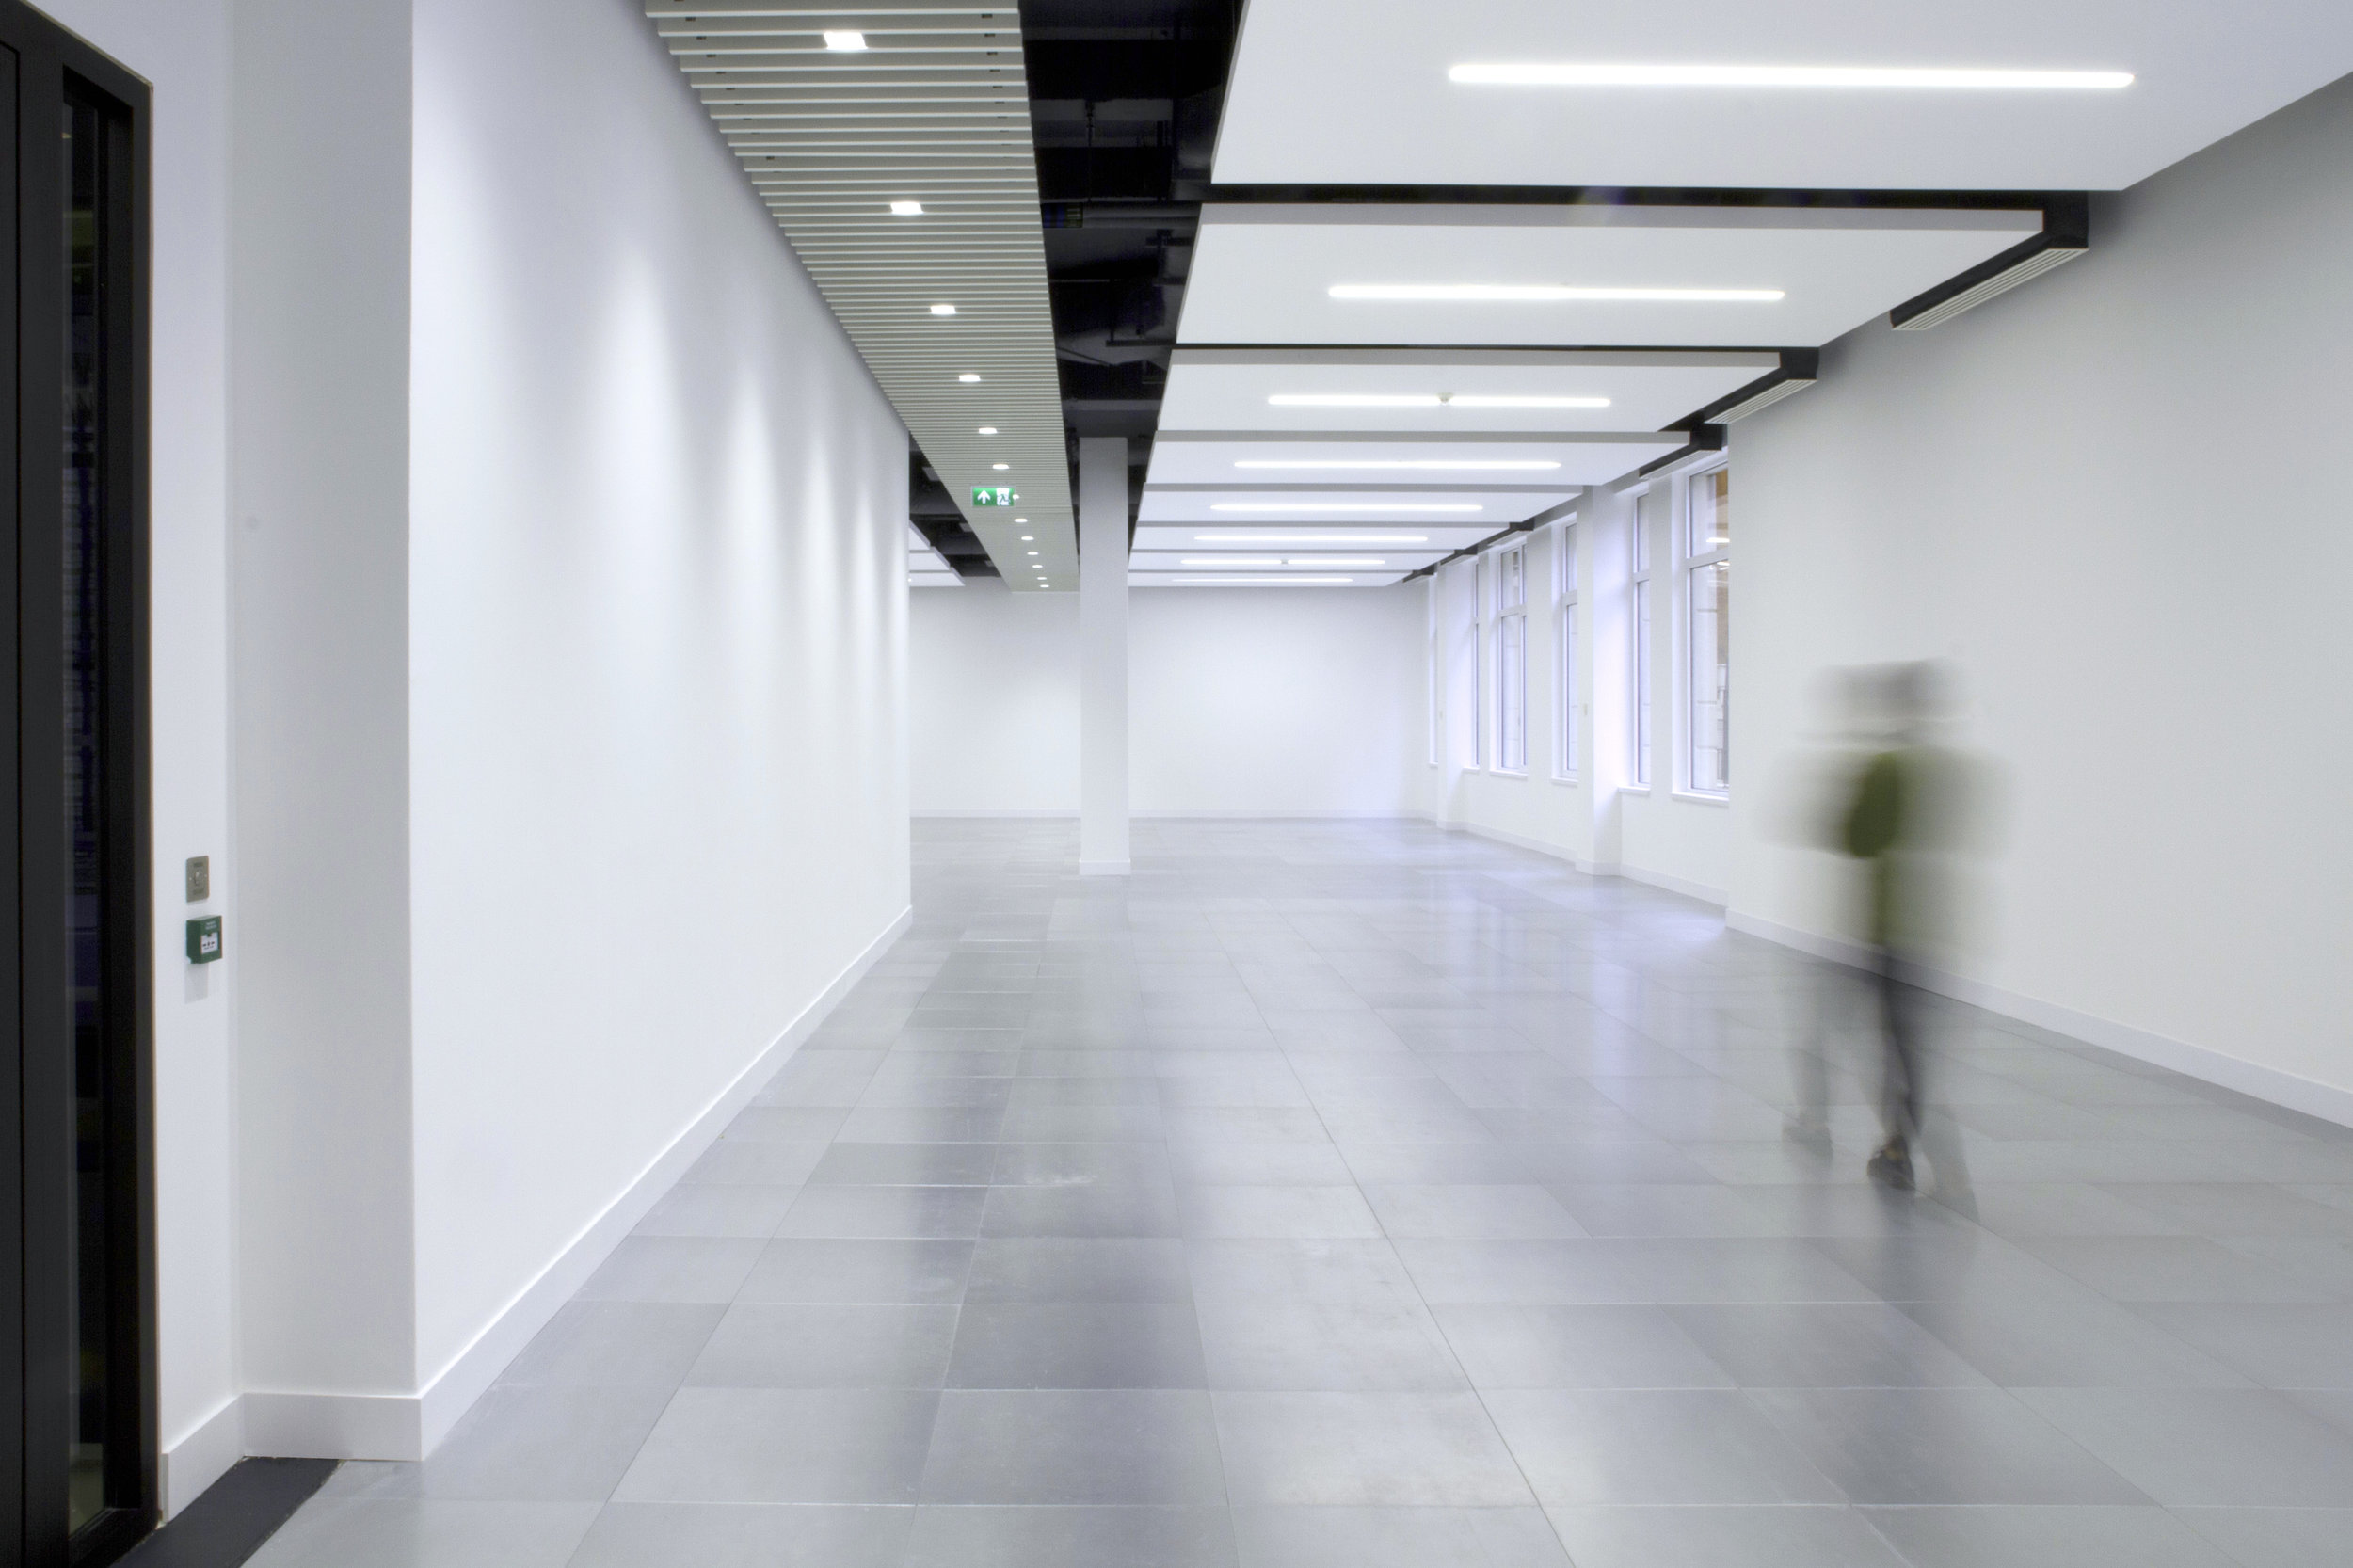 Photograph of Slimline Ceilings at Drury Lane Offices in London